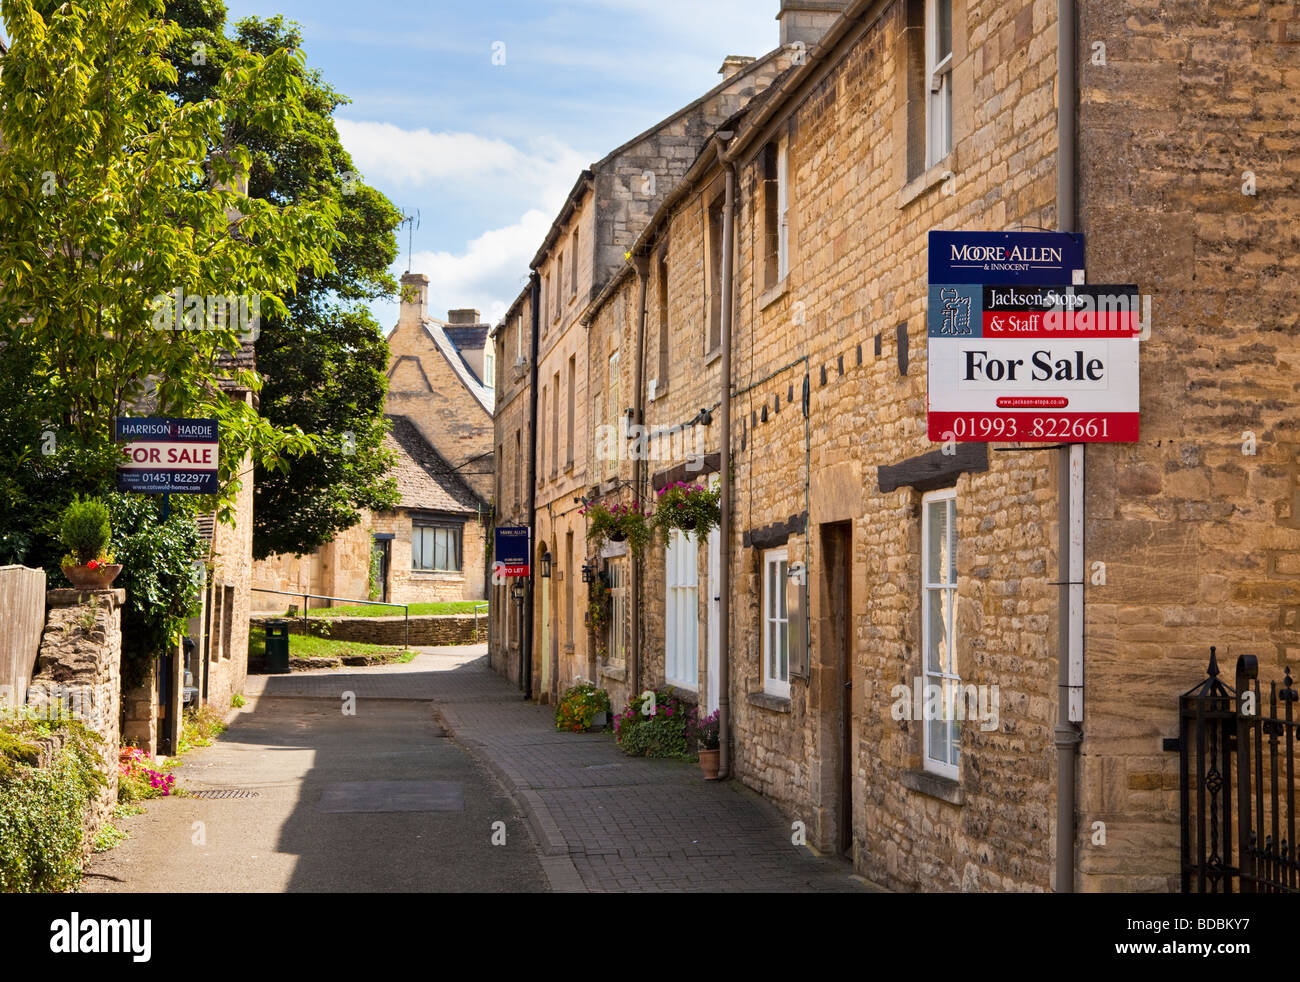 House for sale sign on a village property in Northleach, Gloucestershire, UK Stock Photo